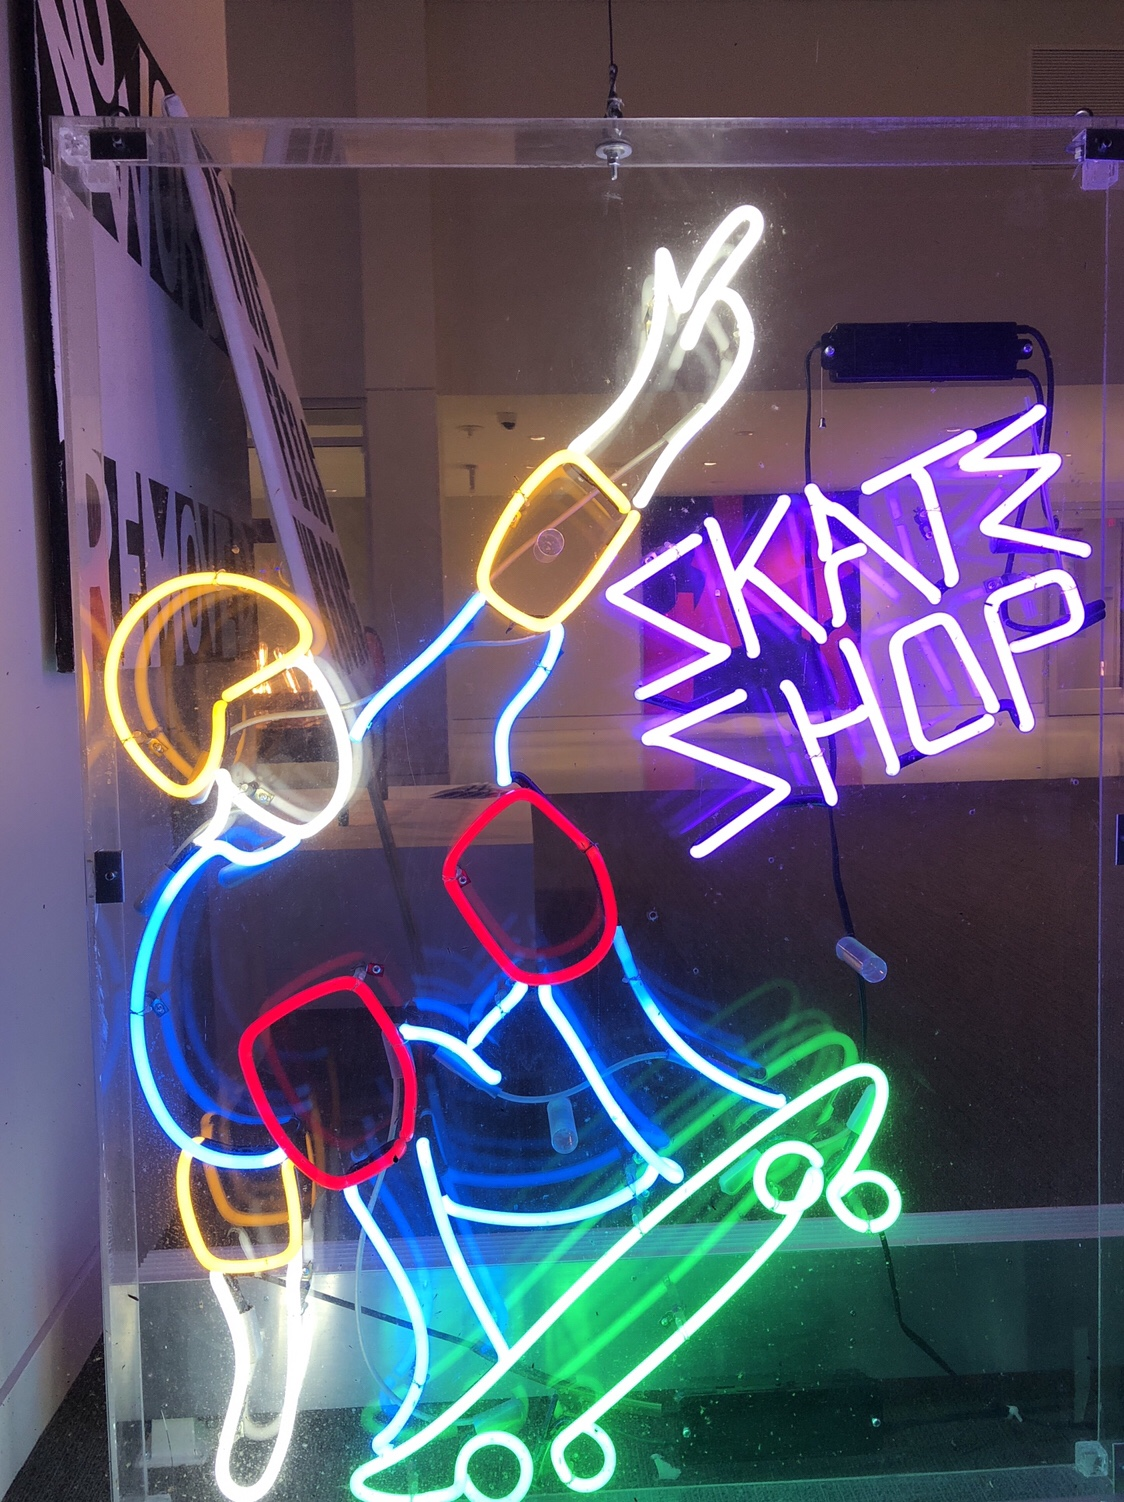 Zipperhead skate shop neon sign